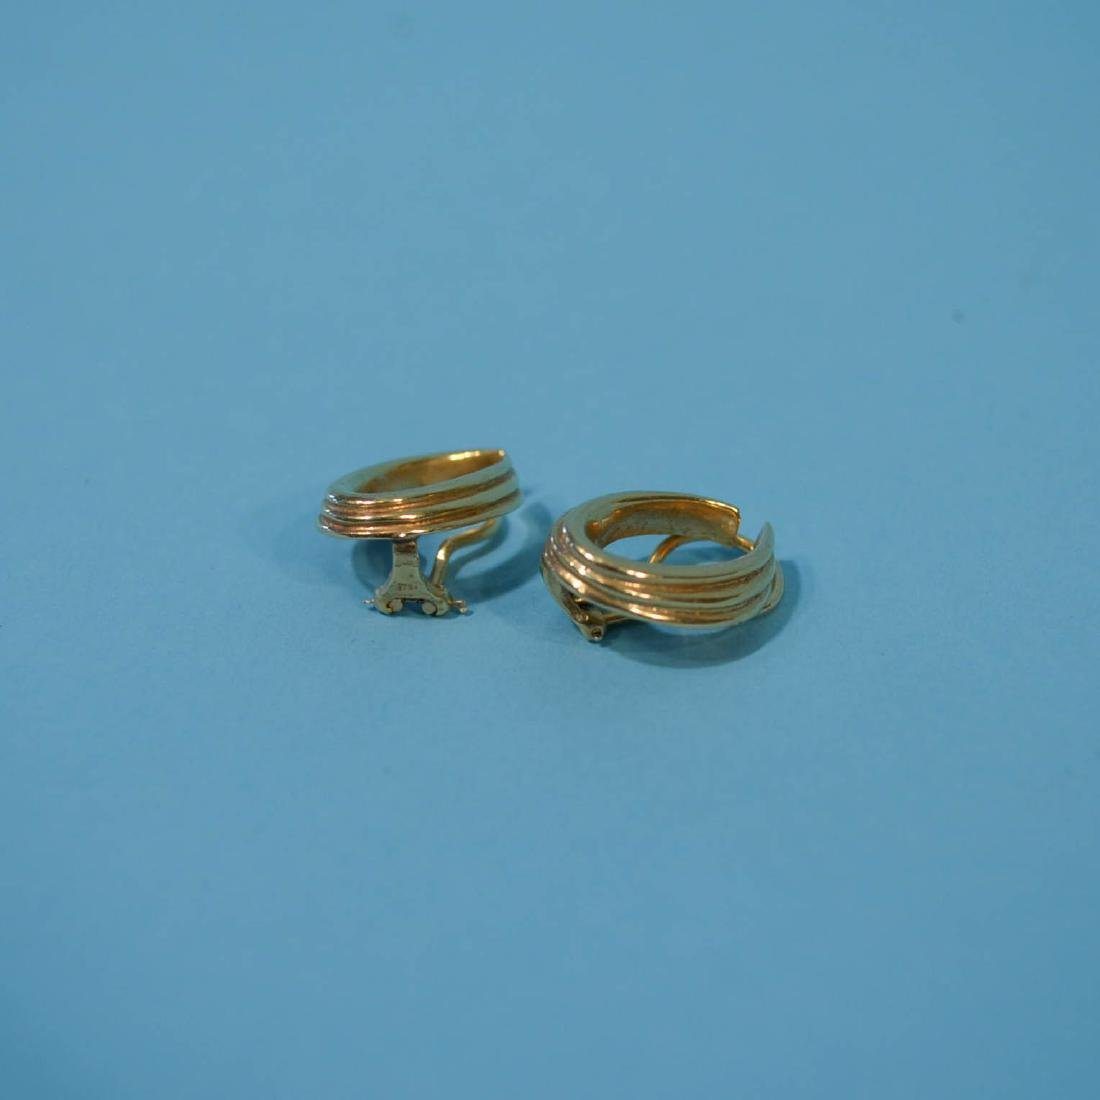 3 Pairs of Classic 14k Gold Earrings - 3